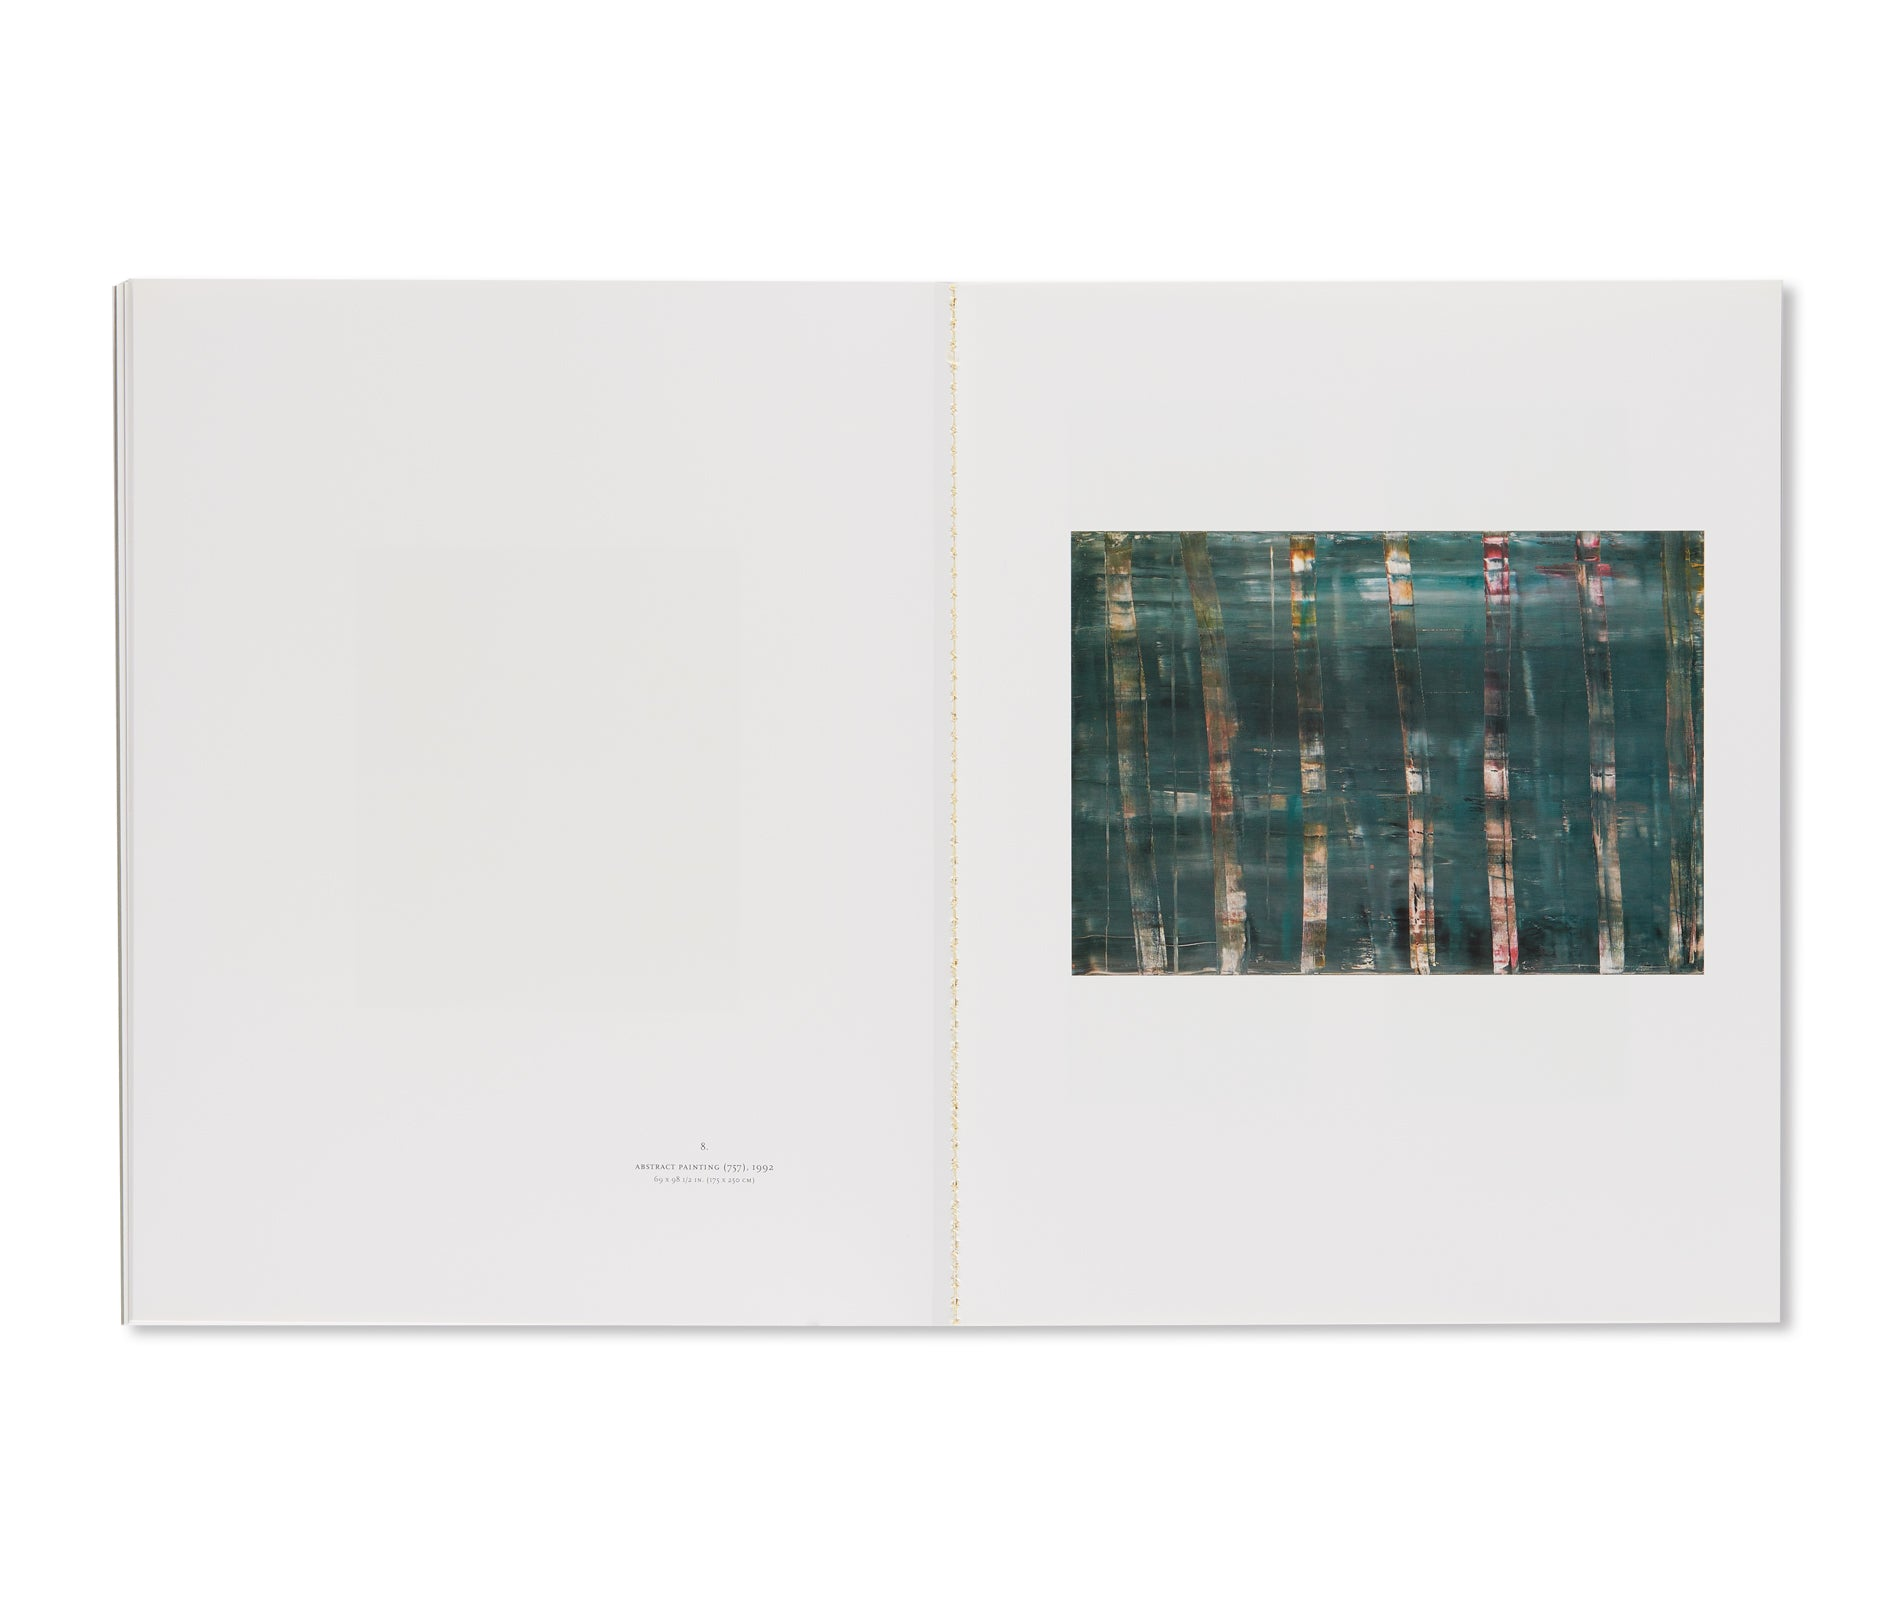 DOCUMENTA IX, 1992 / MARIAN GOODMAN GALLERY, 1993 by Gerhard Richter